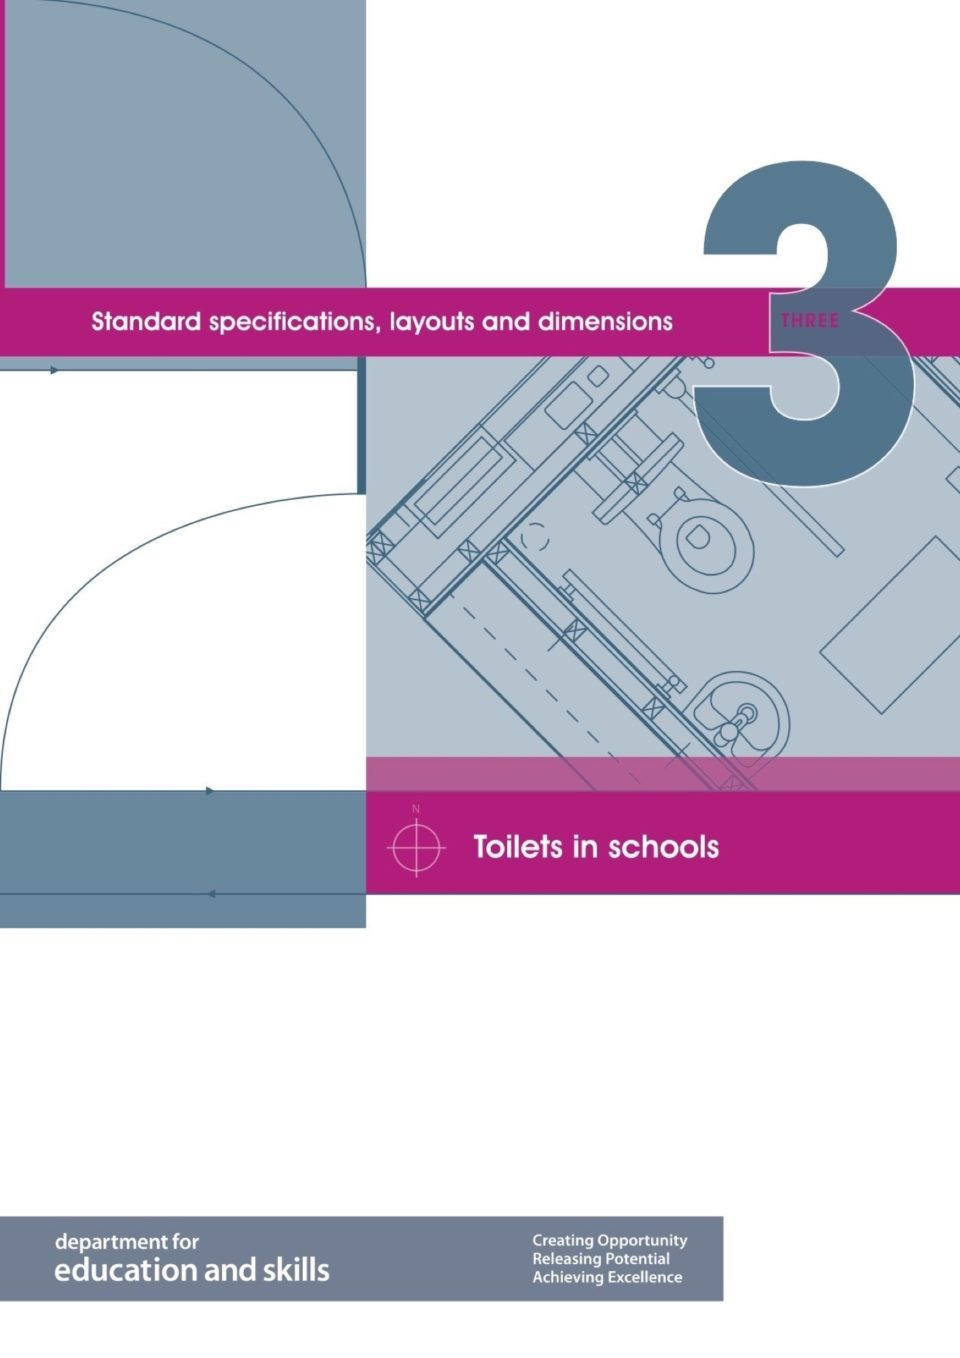 DfE SSLD Toilets Research image